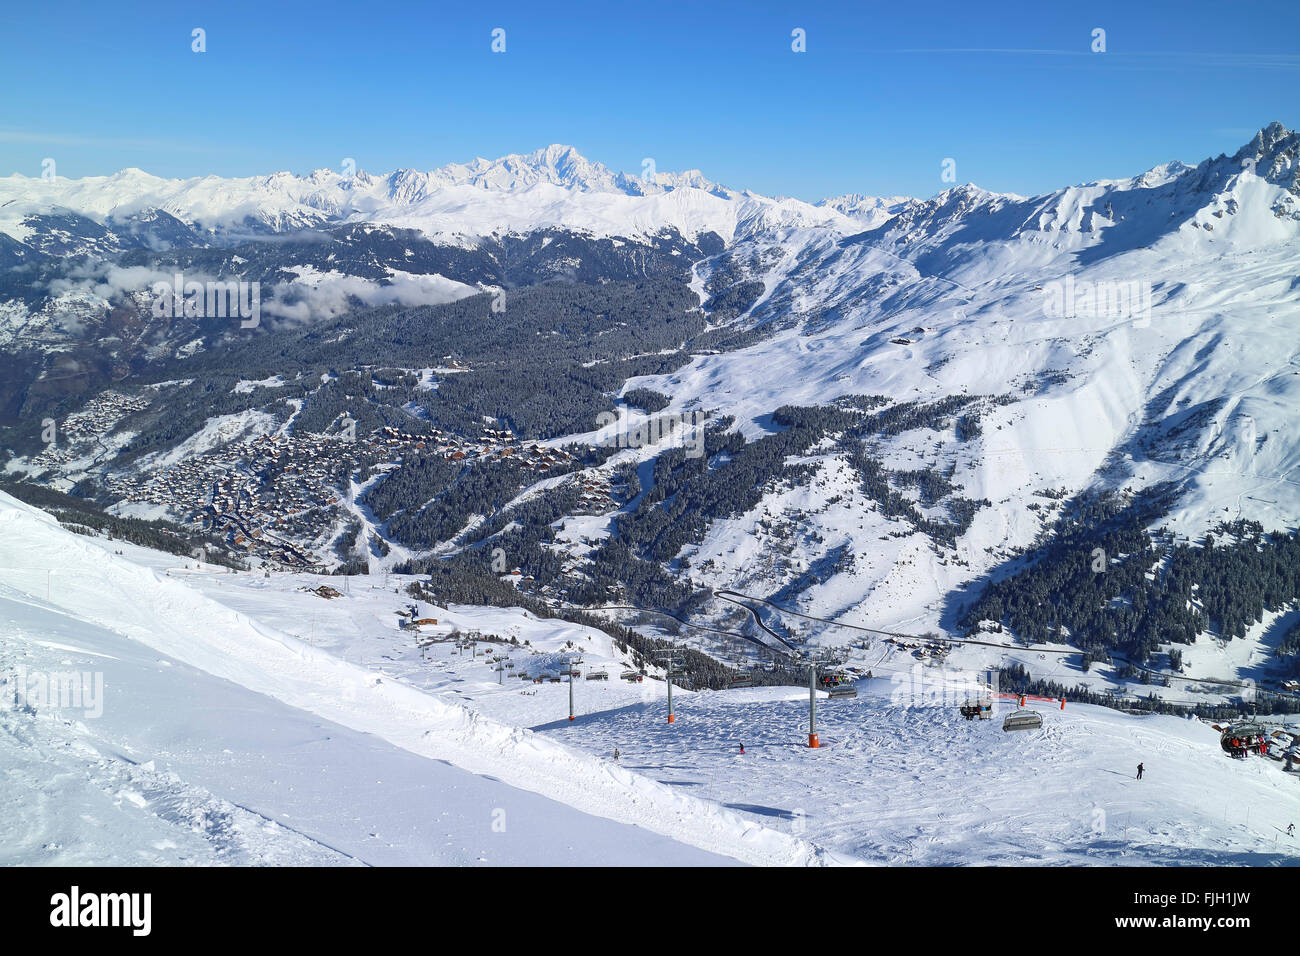 Ski village of Meribel in French Alps Three valleys ski resort, with ski slopes, lifts, chalets - Stock Image